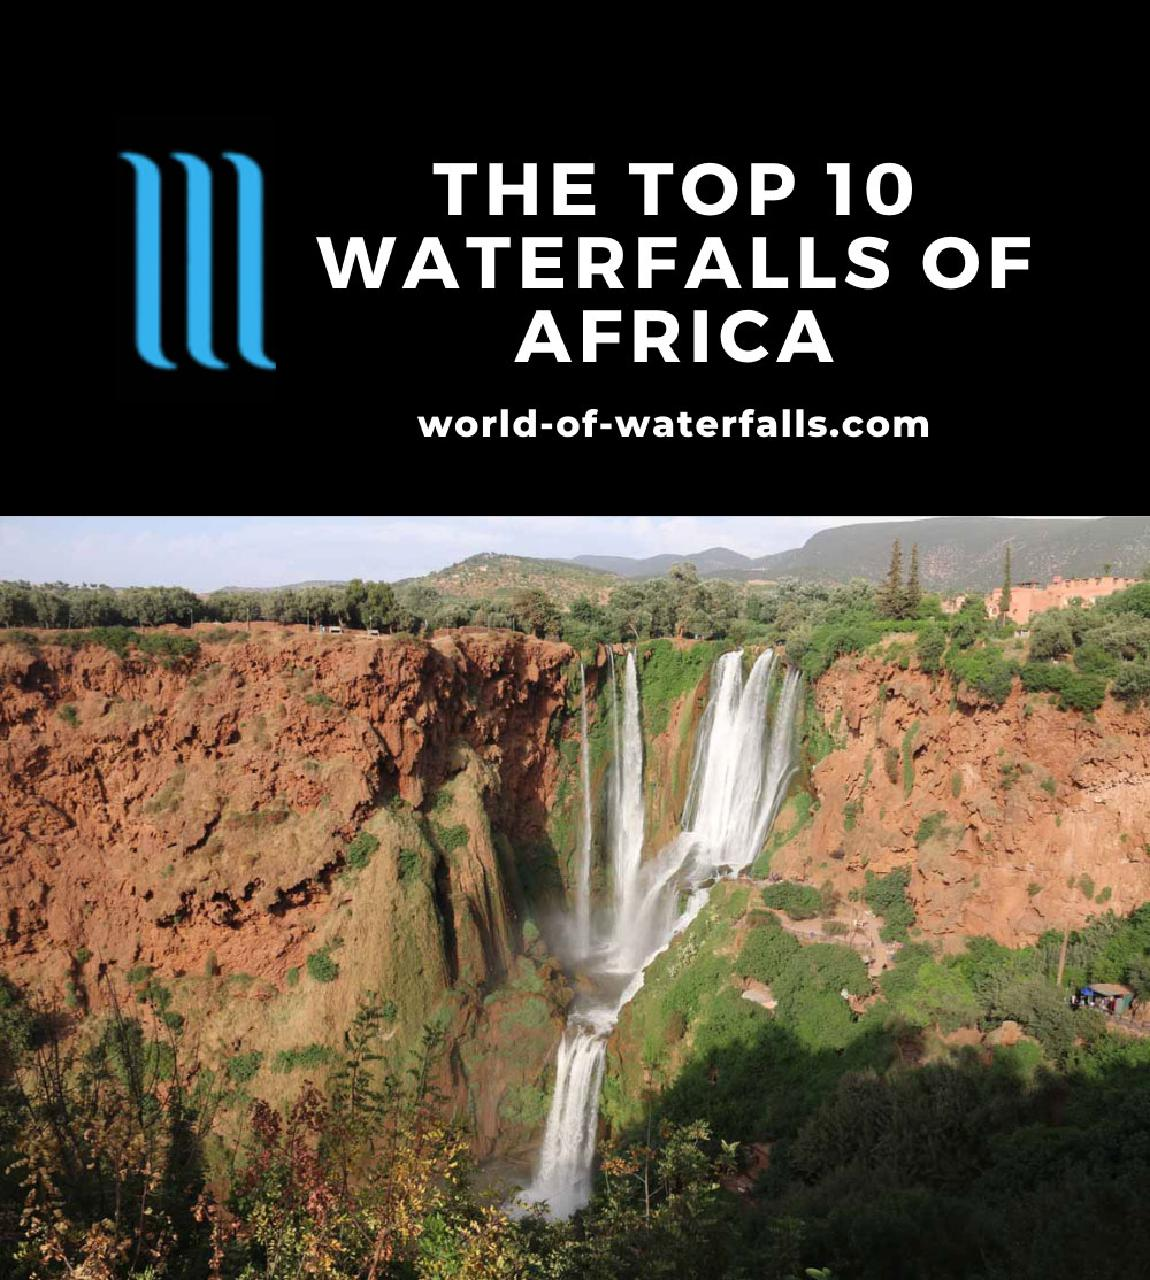 The Top 10 Waterfalls of Africa